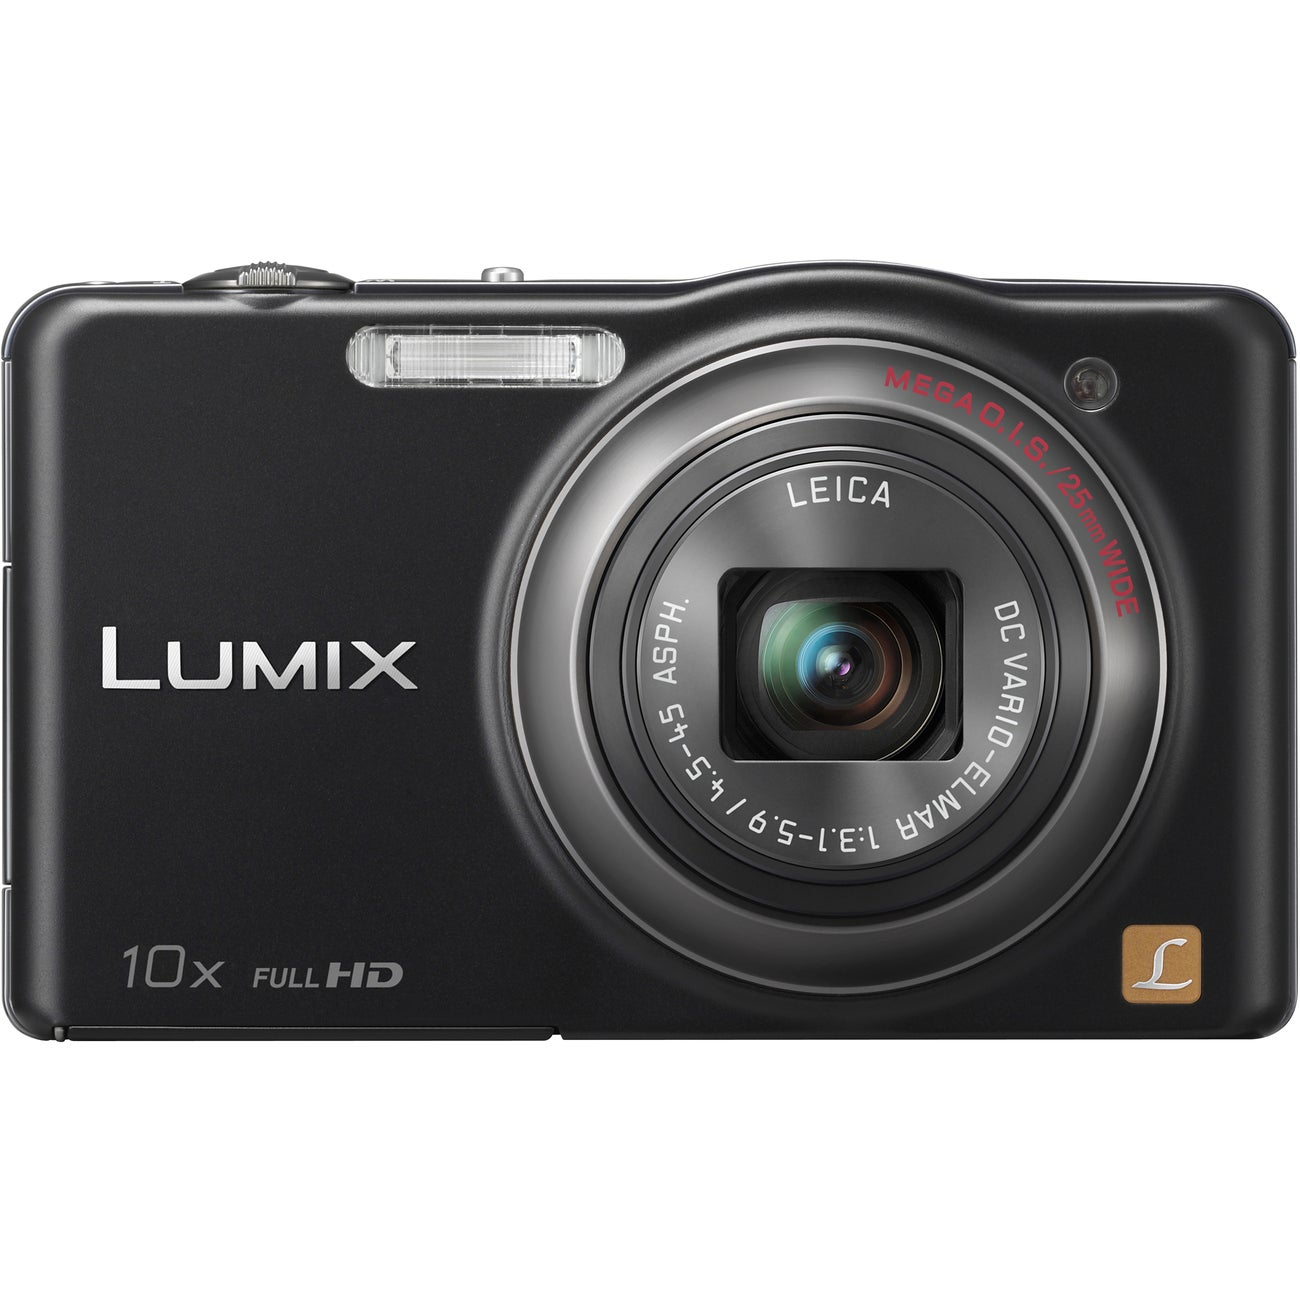 Panasonic Lumix DMC-SZ7 14.1MP Black Digital Camera